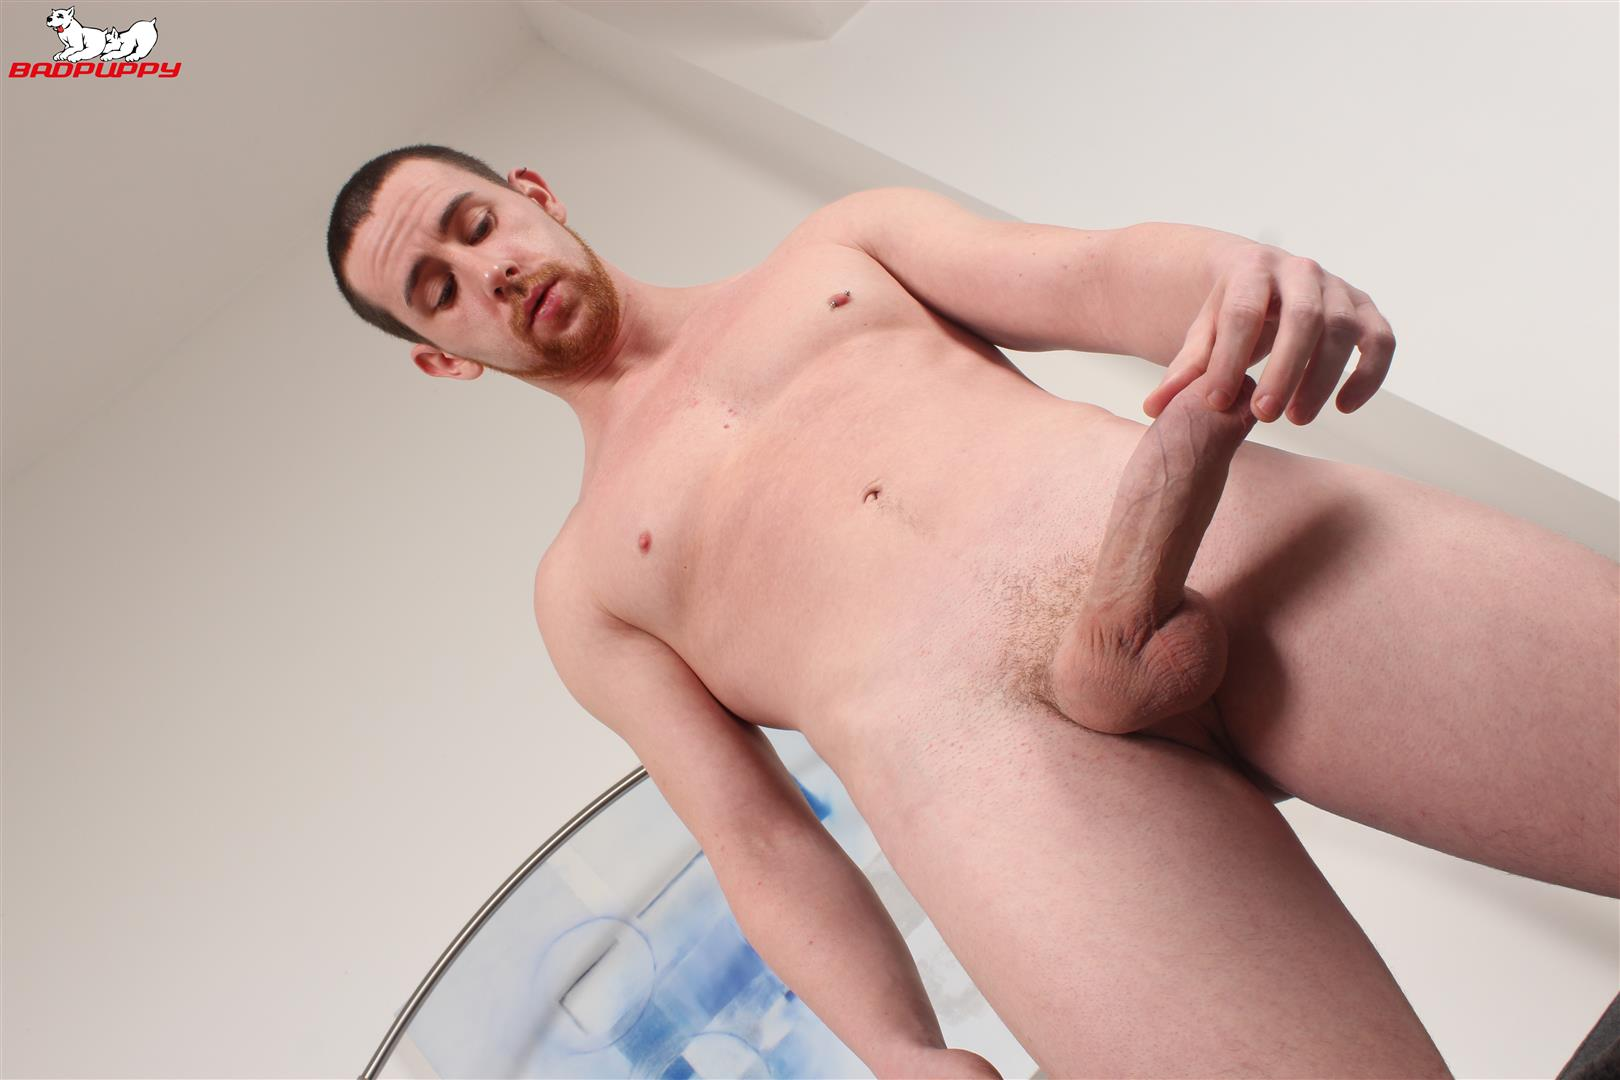 Badpuppy-Anthony-Naylor-Big-Uncut-Cock-Masturbation-08 Sexy British Amateur Plays With His Big Uncut Horse Cock